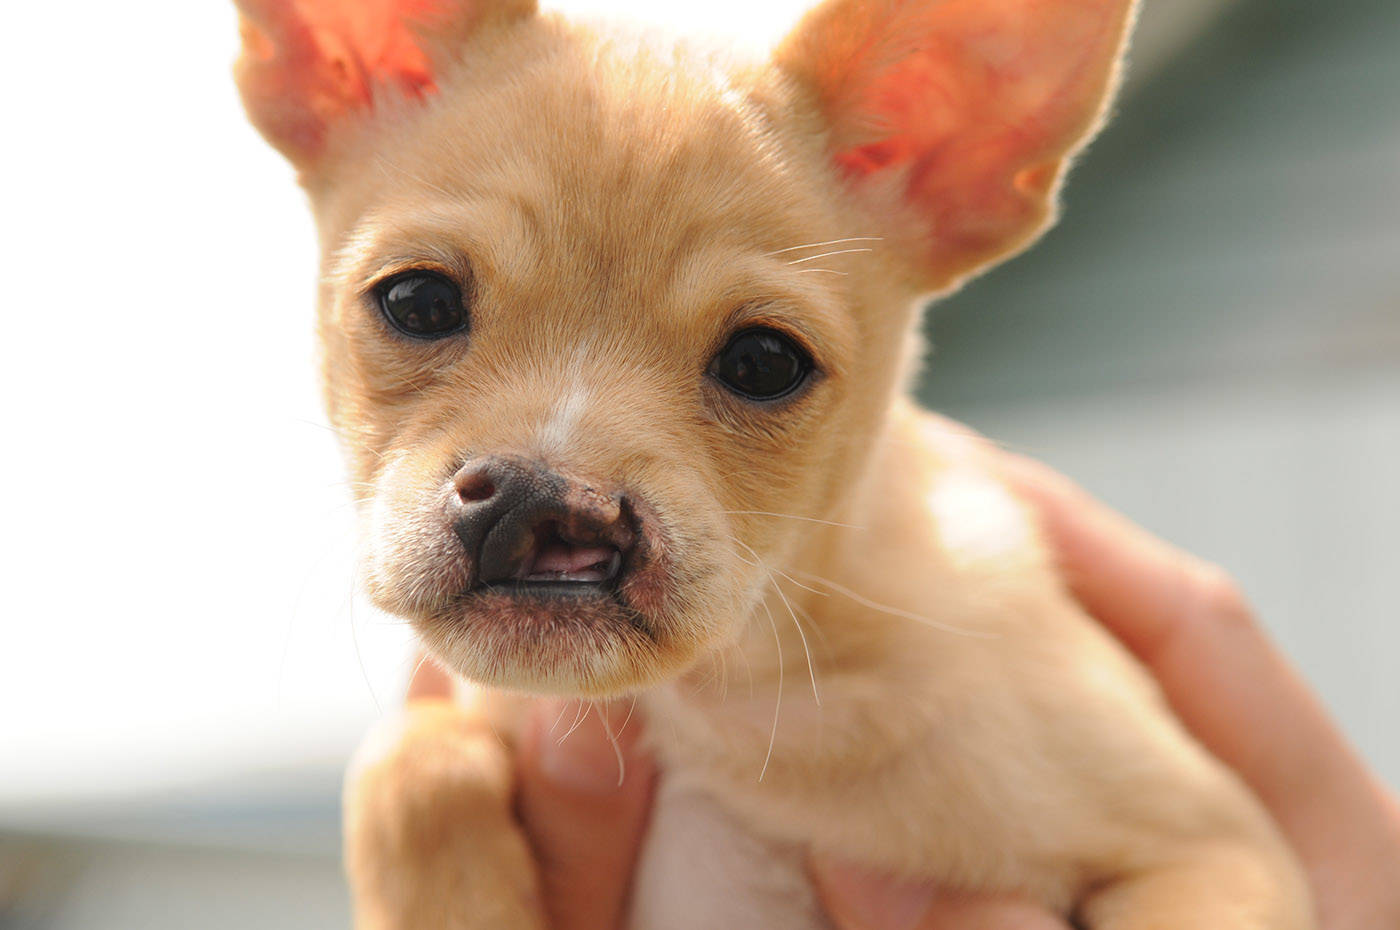 Baby Snoot is a chihuahua cross who was born with a cleft palate. He is seen here at the Chilliwack SPCA on Thursday, June 3, 2021. (Jenna Hauck/ Chilliwack Progress)